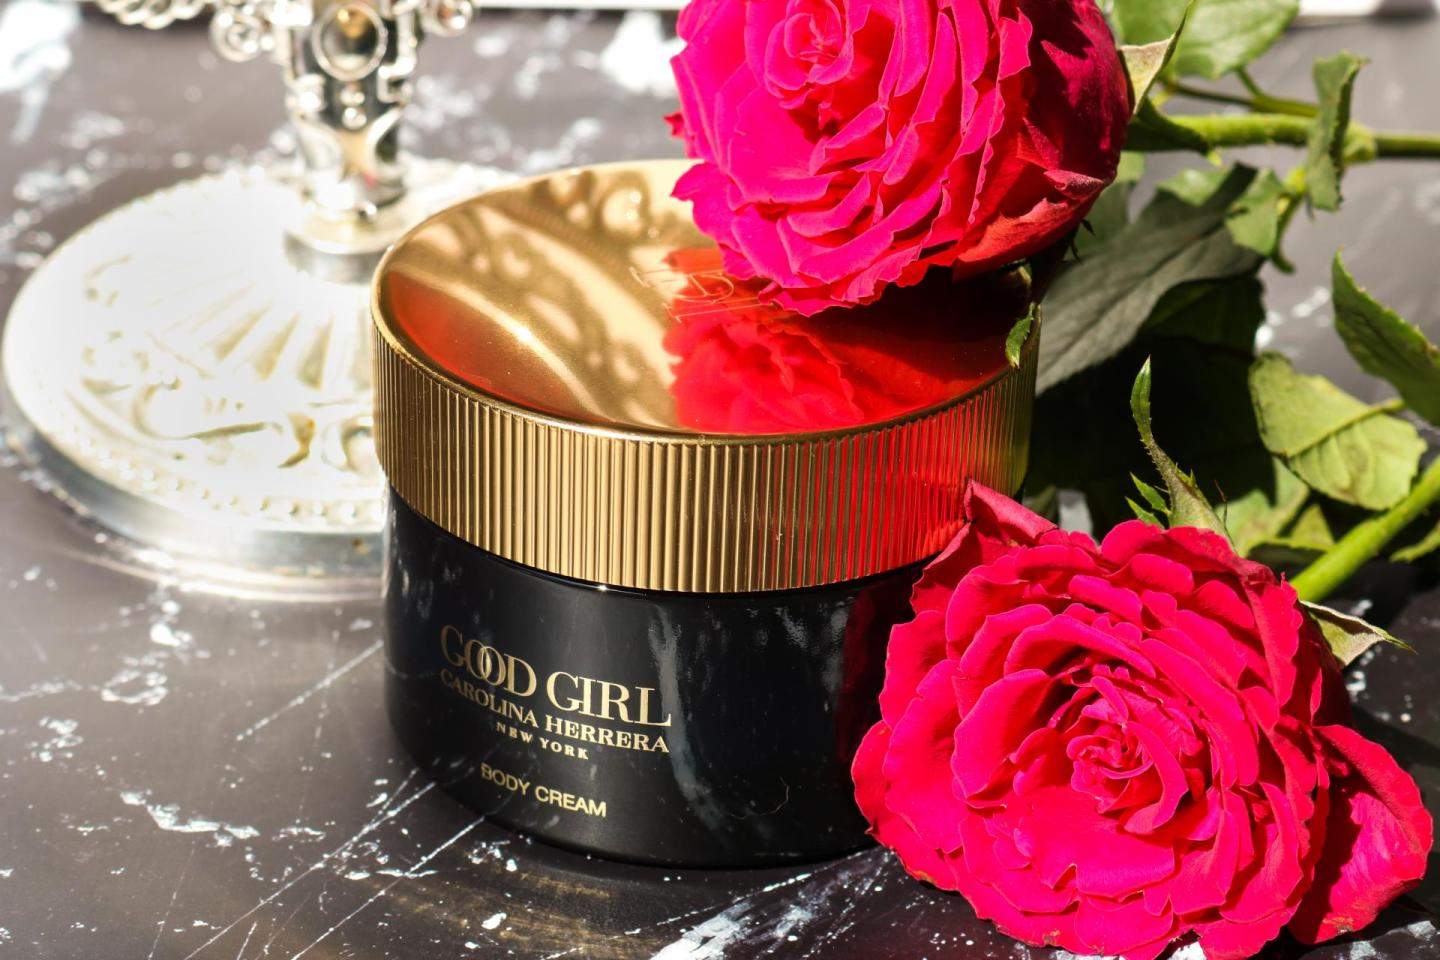 Good Girl Body Cream of Carolina Herrera